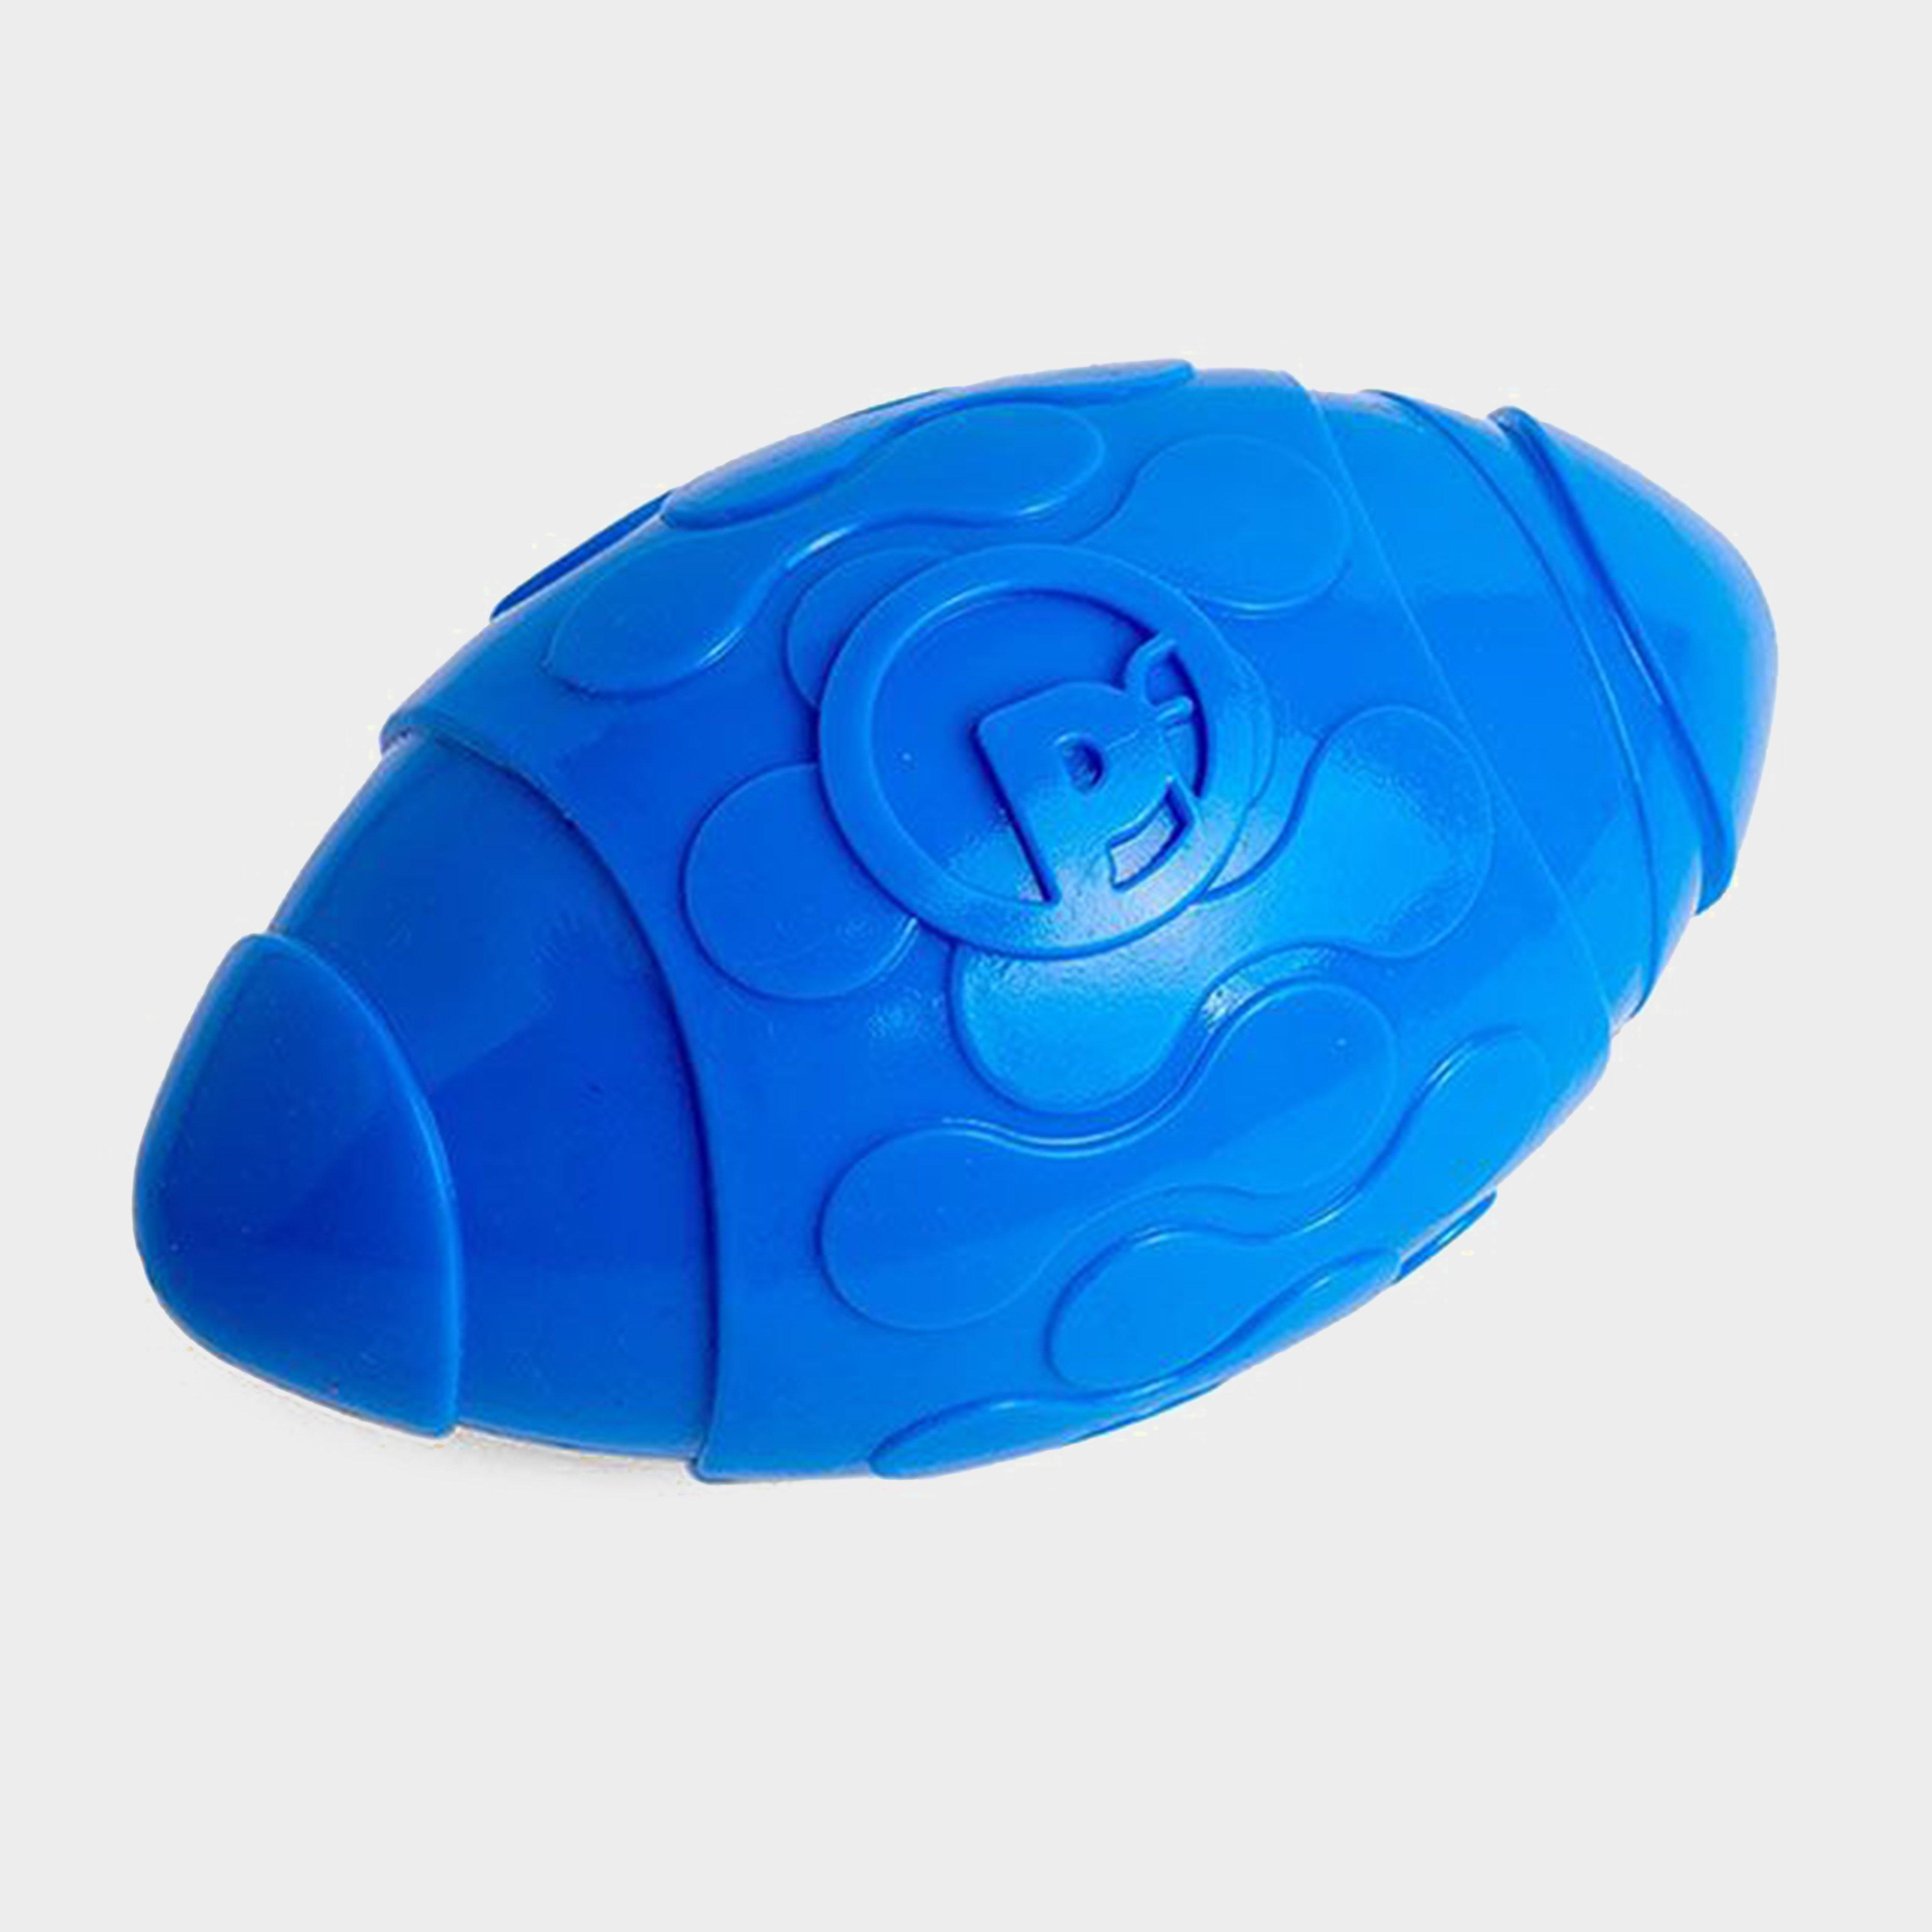 Image of Petface Toyz Rugby Ball - Blue/Blue, Blue/Blue